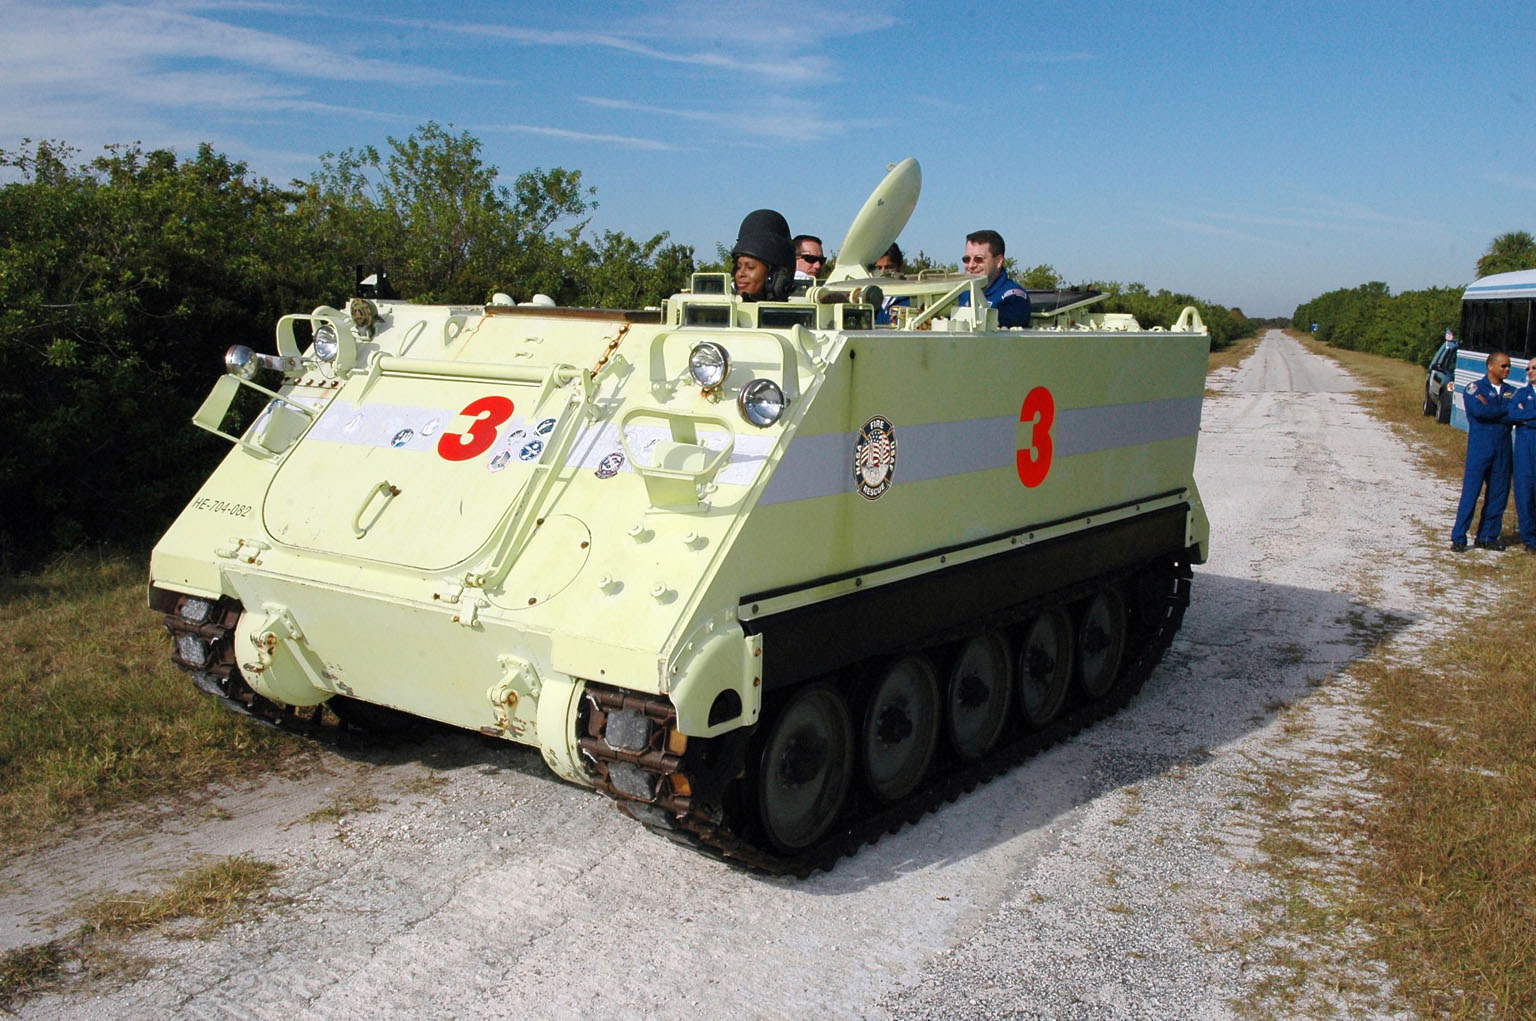 KENNEDY SPACE CENTER, FLA. -- STS-116 Mission Specialist Joan Higginbotham practices driving the M-113 armored personnel carrier. The mission crew is at KSC for terminal countdown demonstration test (TCDT) activities that are preparation for launch. The M-113 could be used to move the crew quickly away from the launch pad in the event of an emergency. In the background can be seen Pilot William Oefelein and Mission Specialist Nicholas Patrick. The STS-116 mission is No. 20 to the International Space Station and construction flight 12A.1. The mission payload is the SPACEHAB module, the P5 integrated truss structure and other key components. Launch is scheduled for no earlier than Dec. 7. Photo credit: NASA/Kim Shiflett